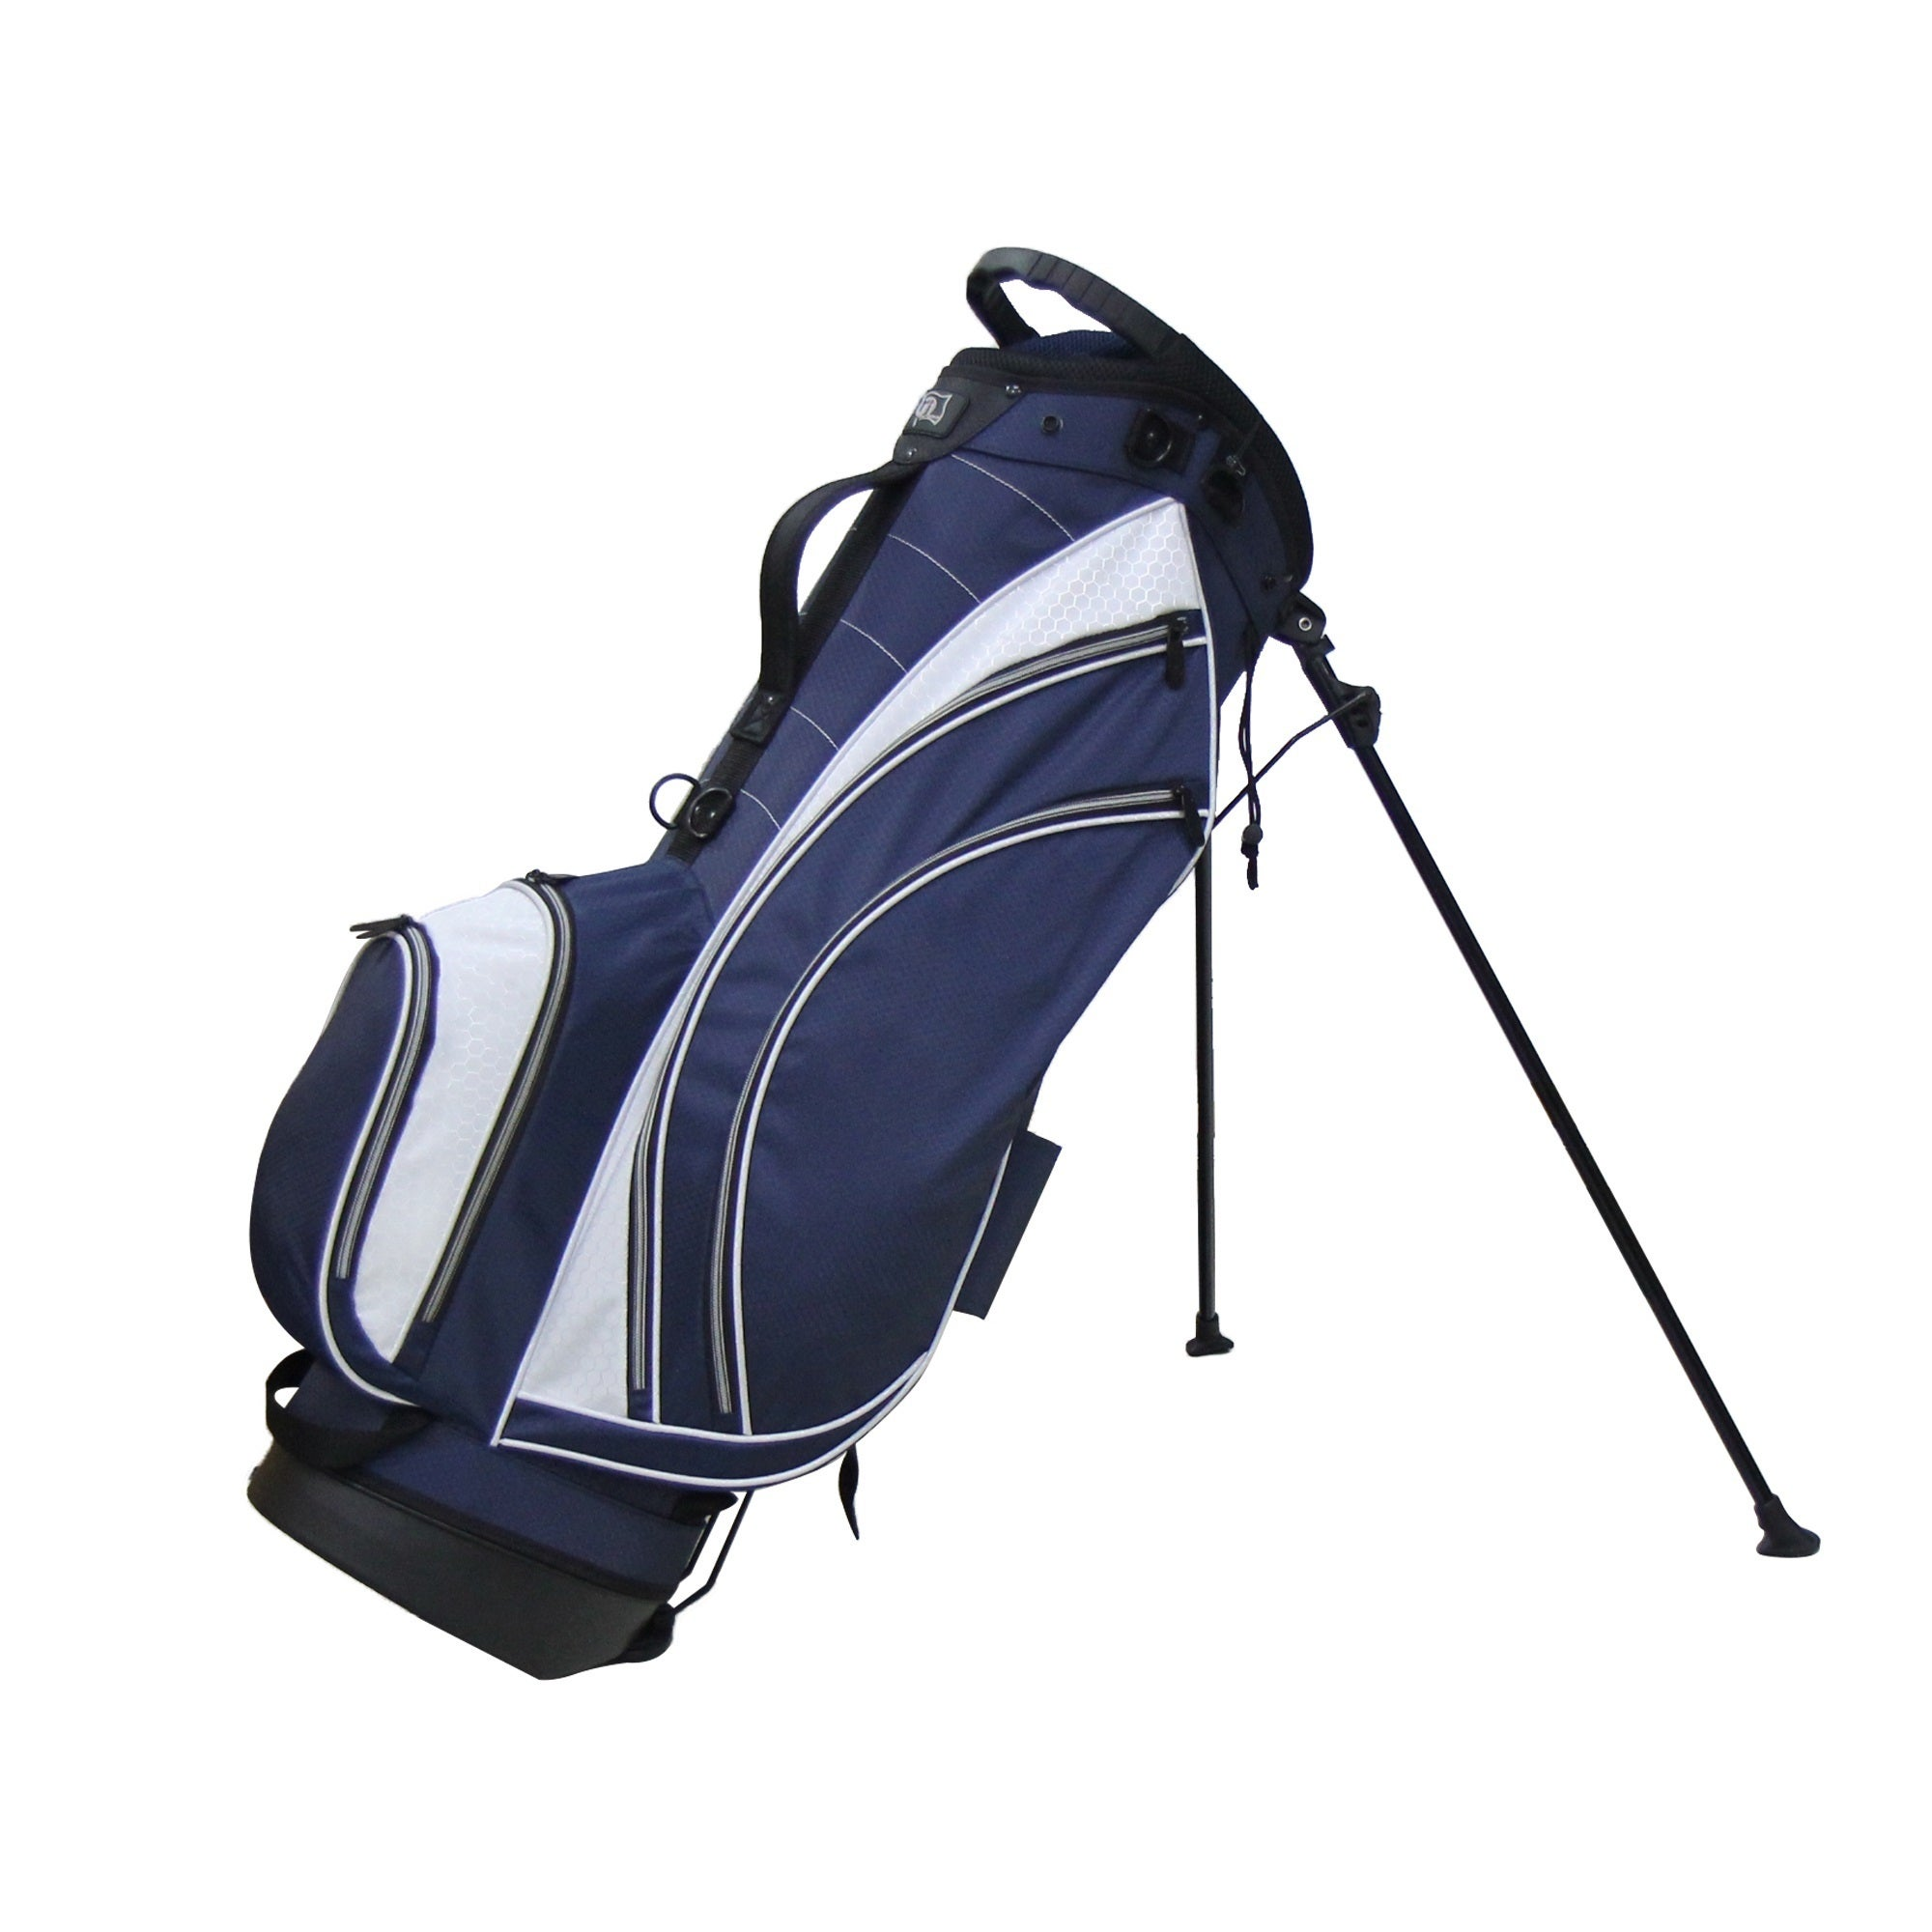 Rj Sports Sb 495 9 Stand Bag Free Shipping Today 25426896